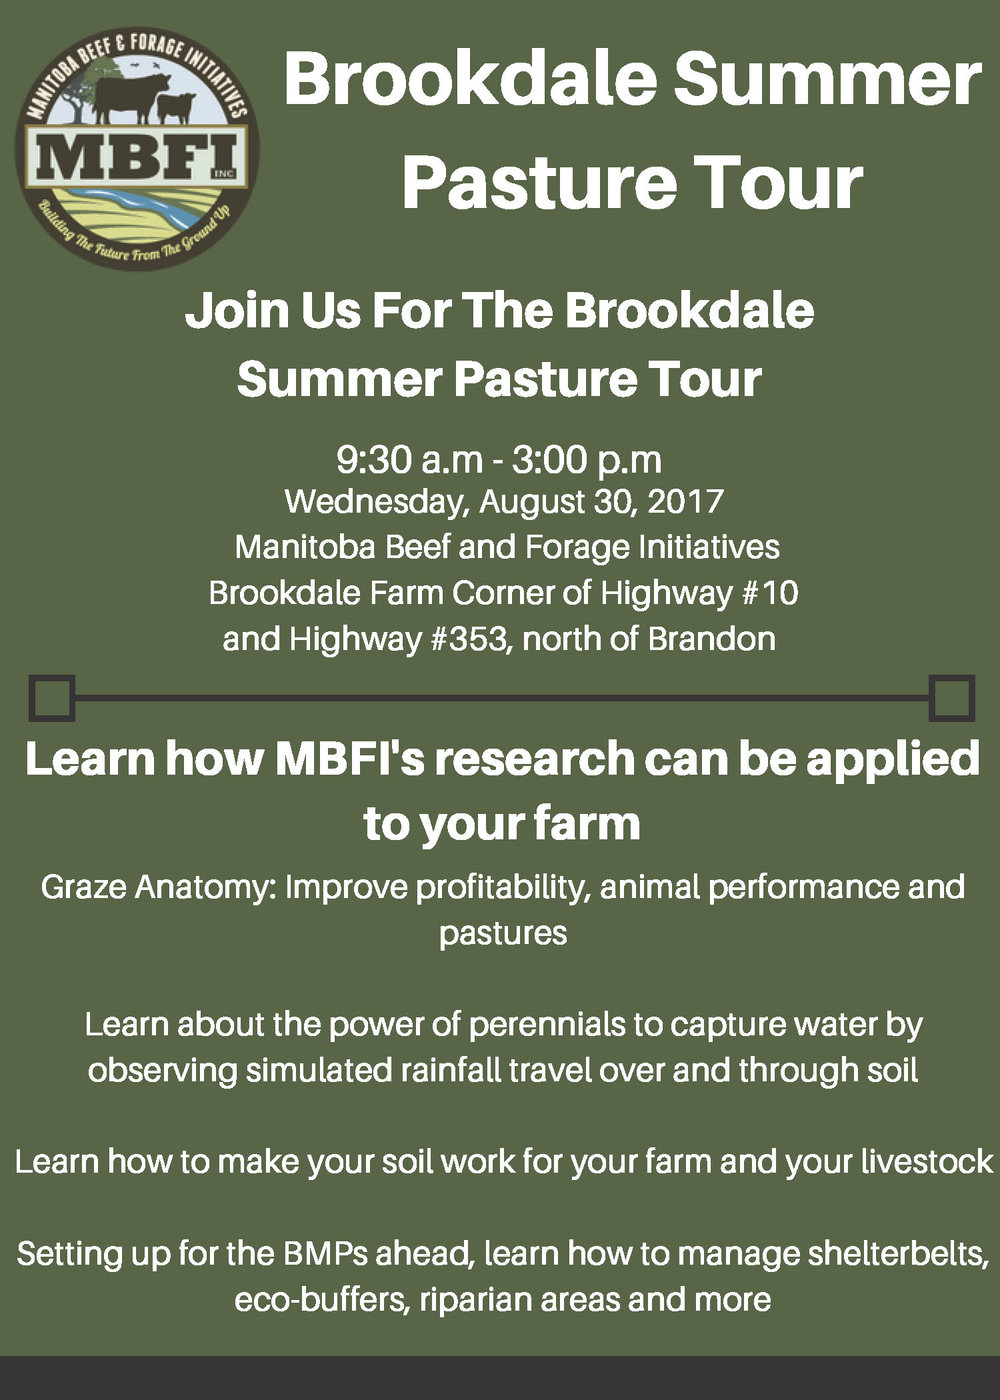 Brookdale Summer Pasture Tour.jpg